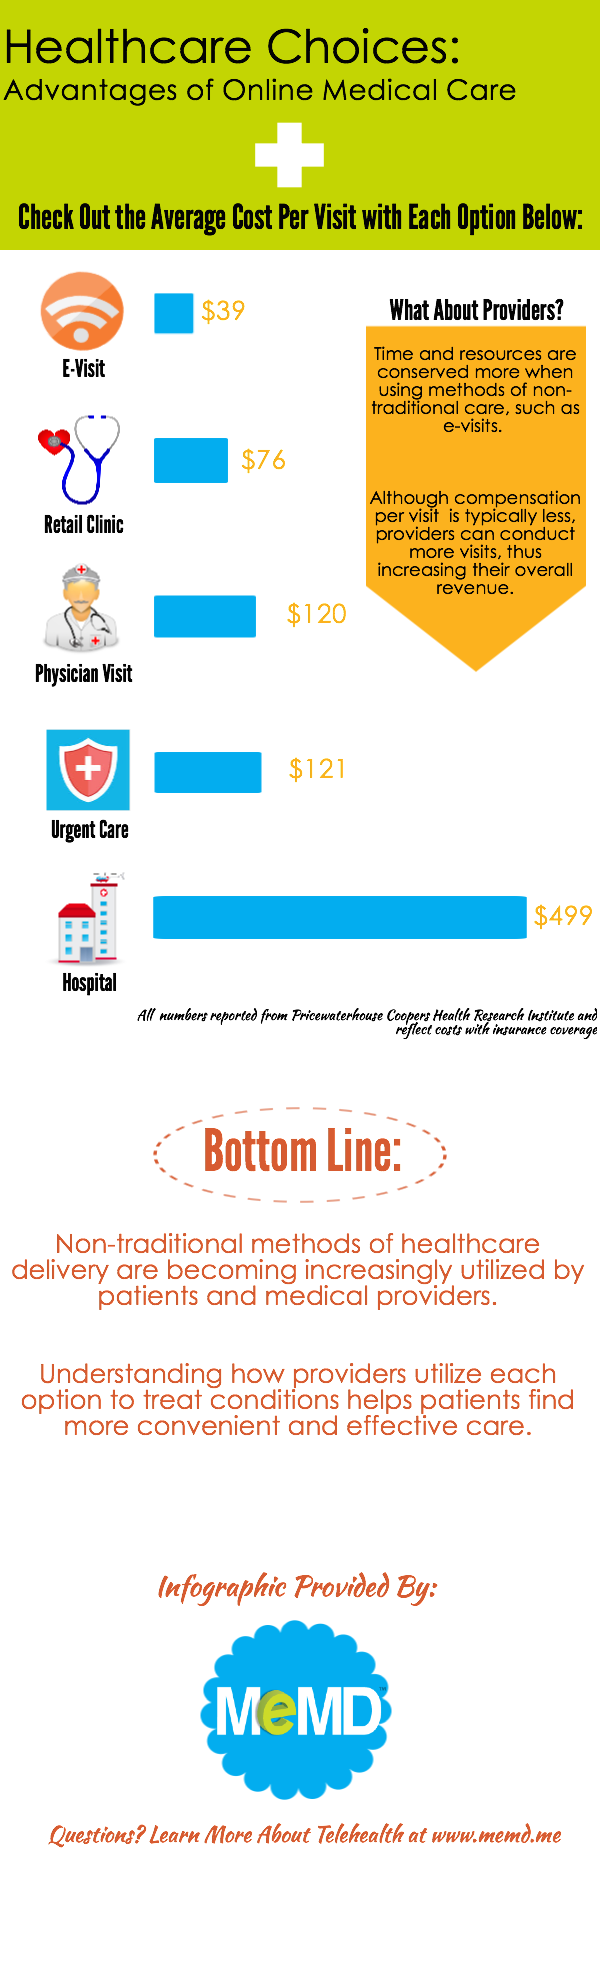 blog-MeMD-infographic-healthcare-costs